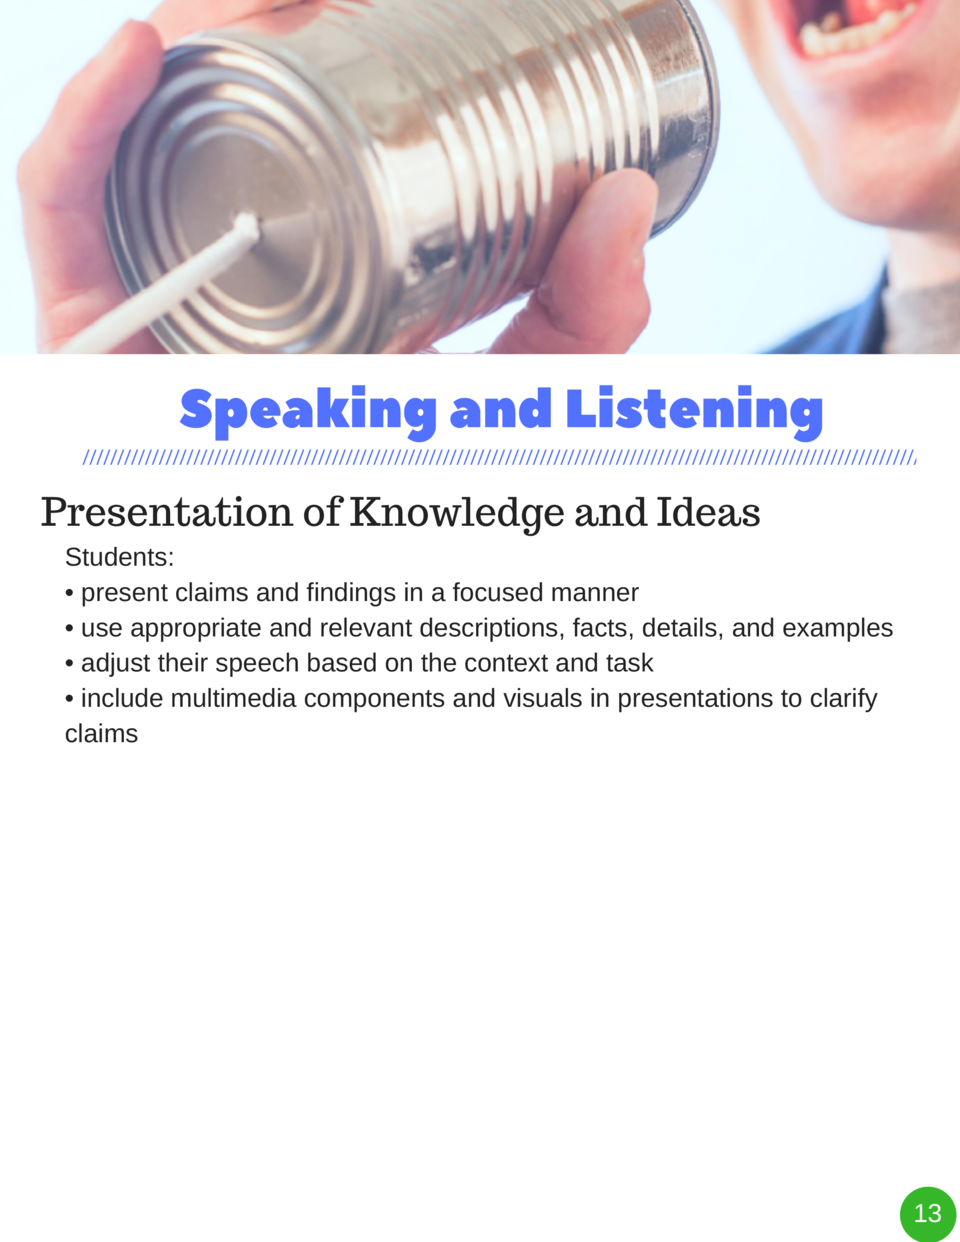 Speaking and Listening Presentation of Knowledge and Ideas Students      present claims and findings in a focused manner  ...